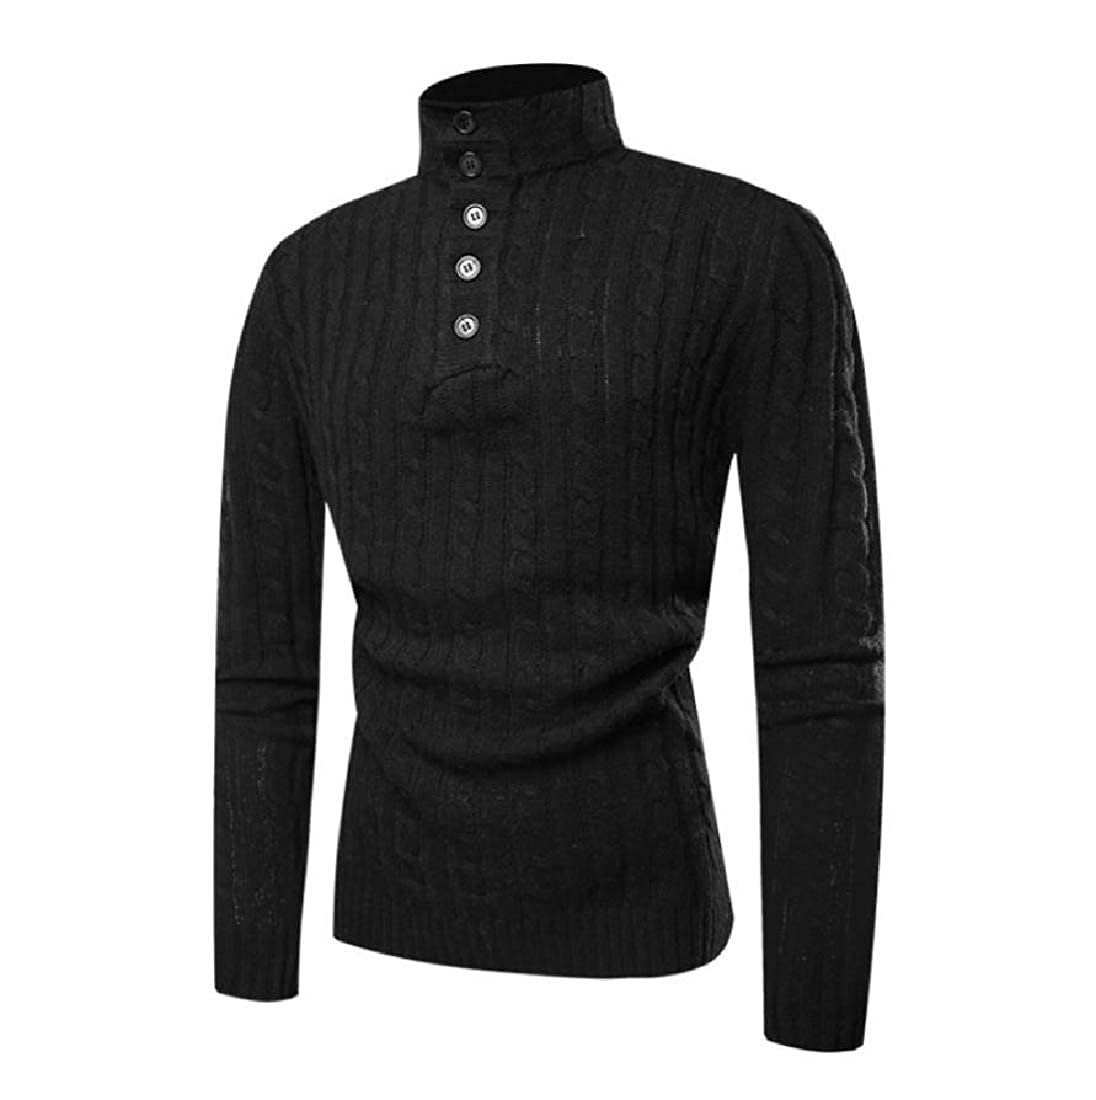 YUNY Mens Loose Buckle Graceful Tops Pullover High Neck Sweater Black S